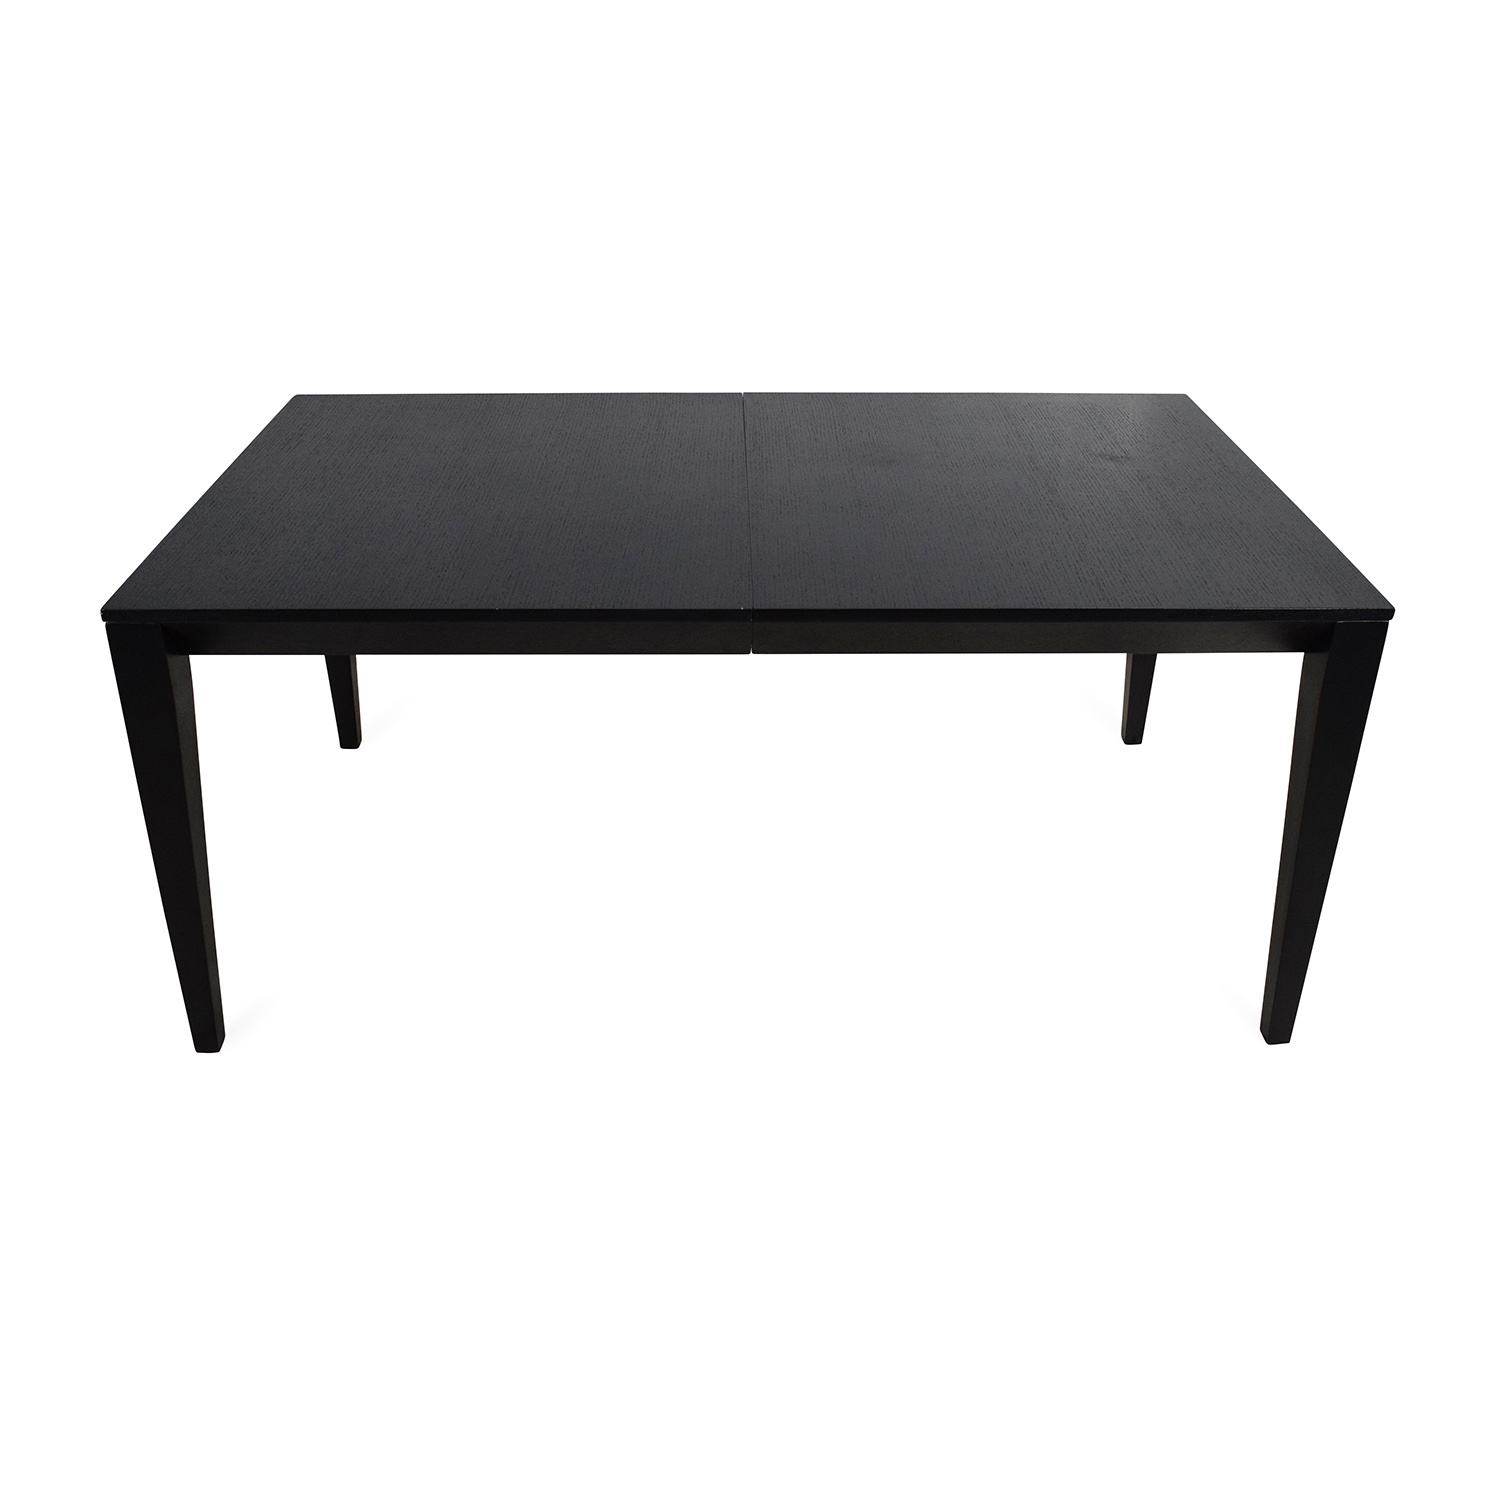 Crate and Barrel Crate & Barrel Black Extendable Dining Table used